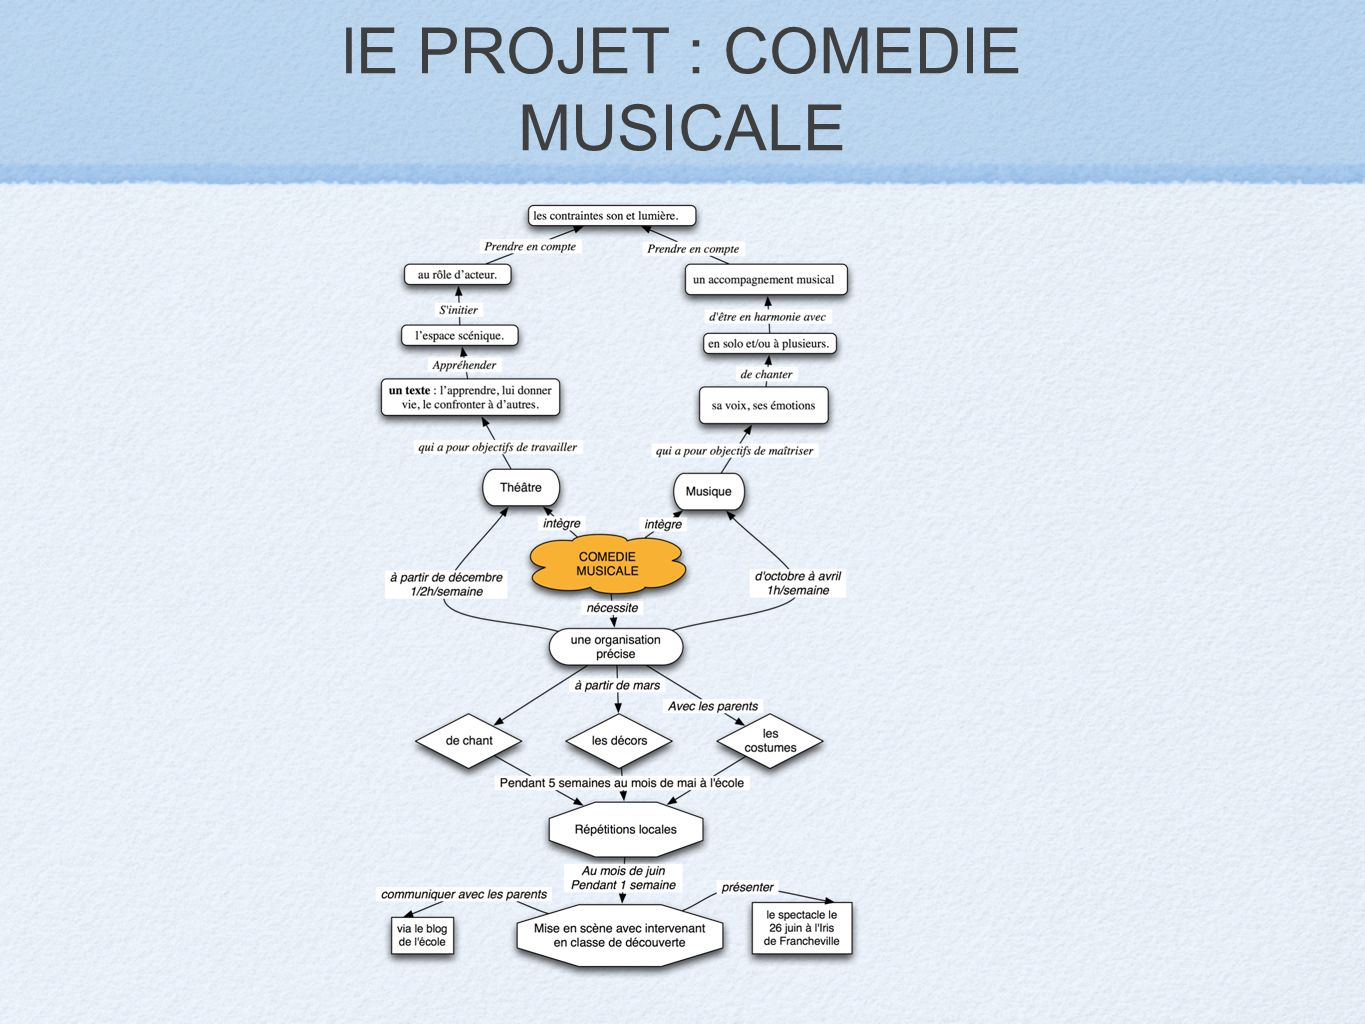 lE PROJET : COMEDIE MUSICALE